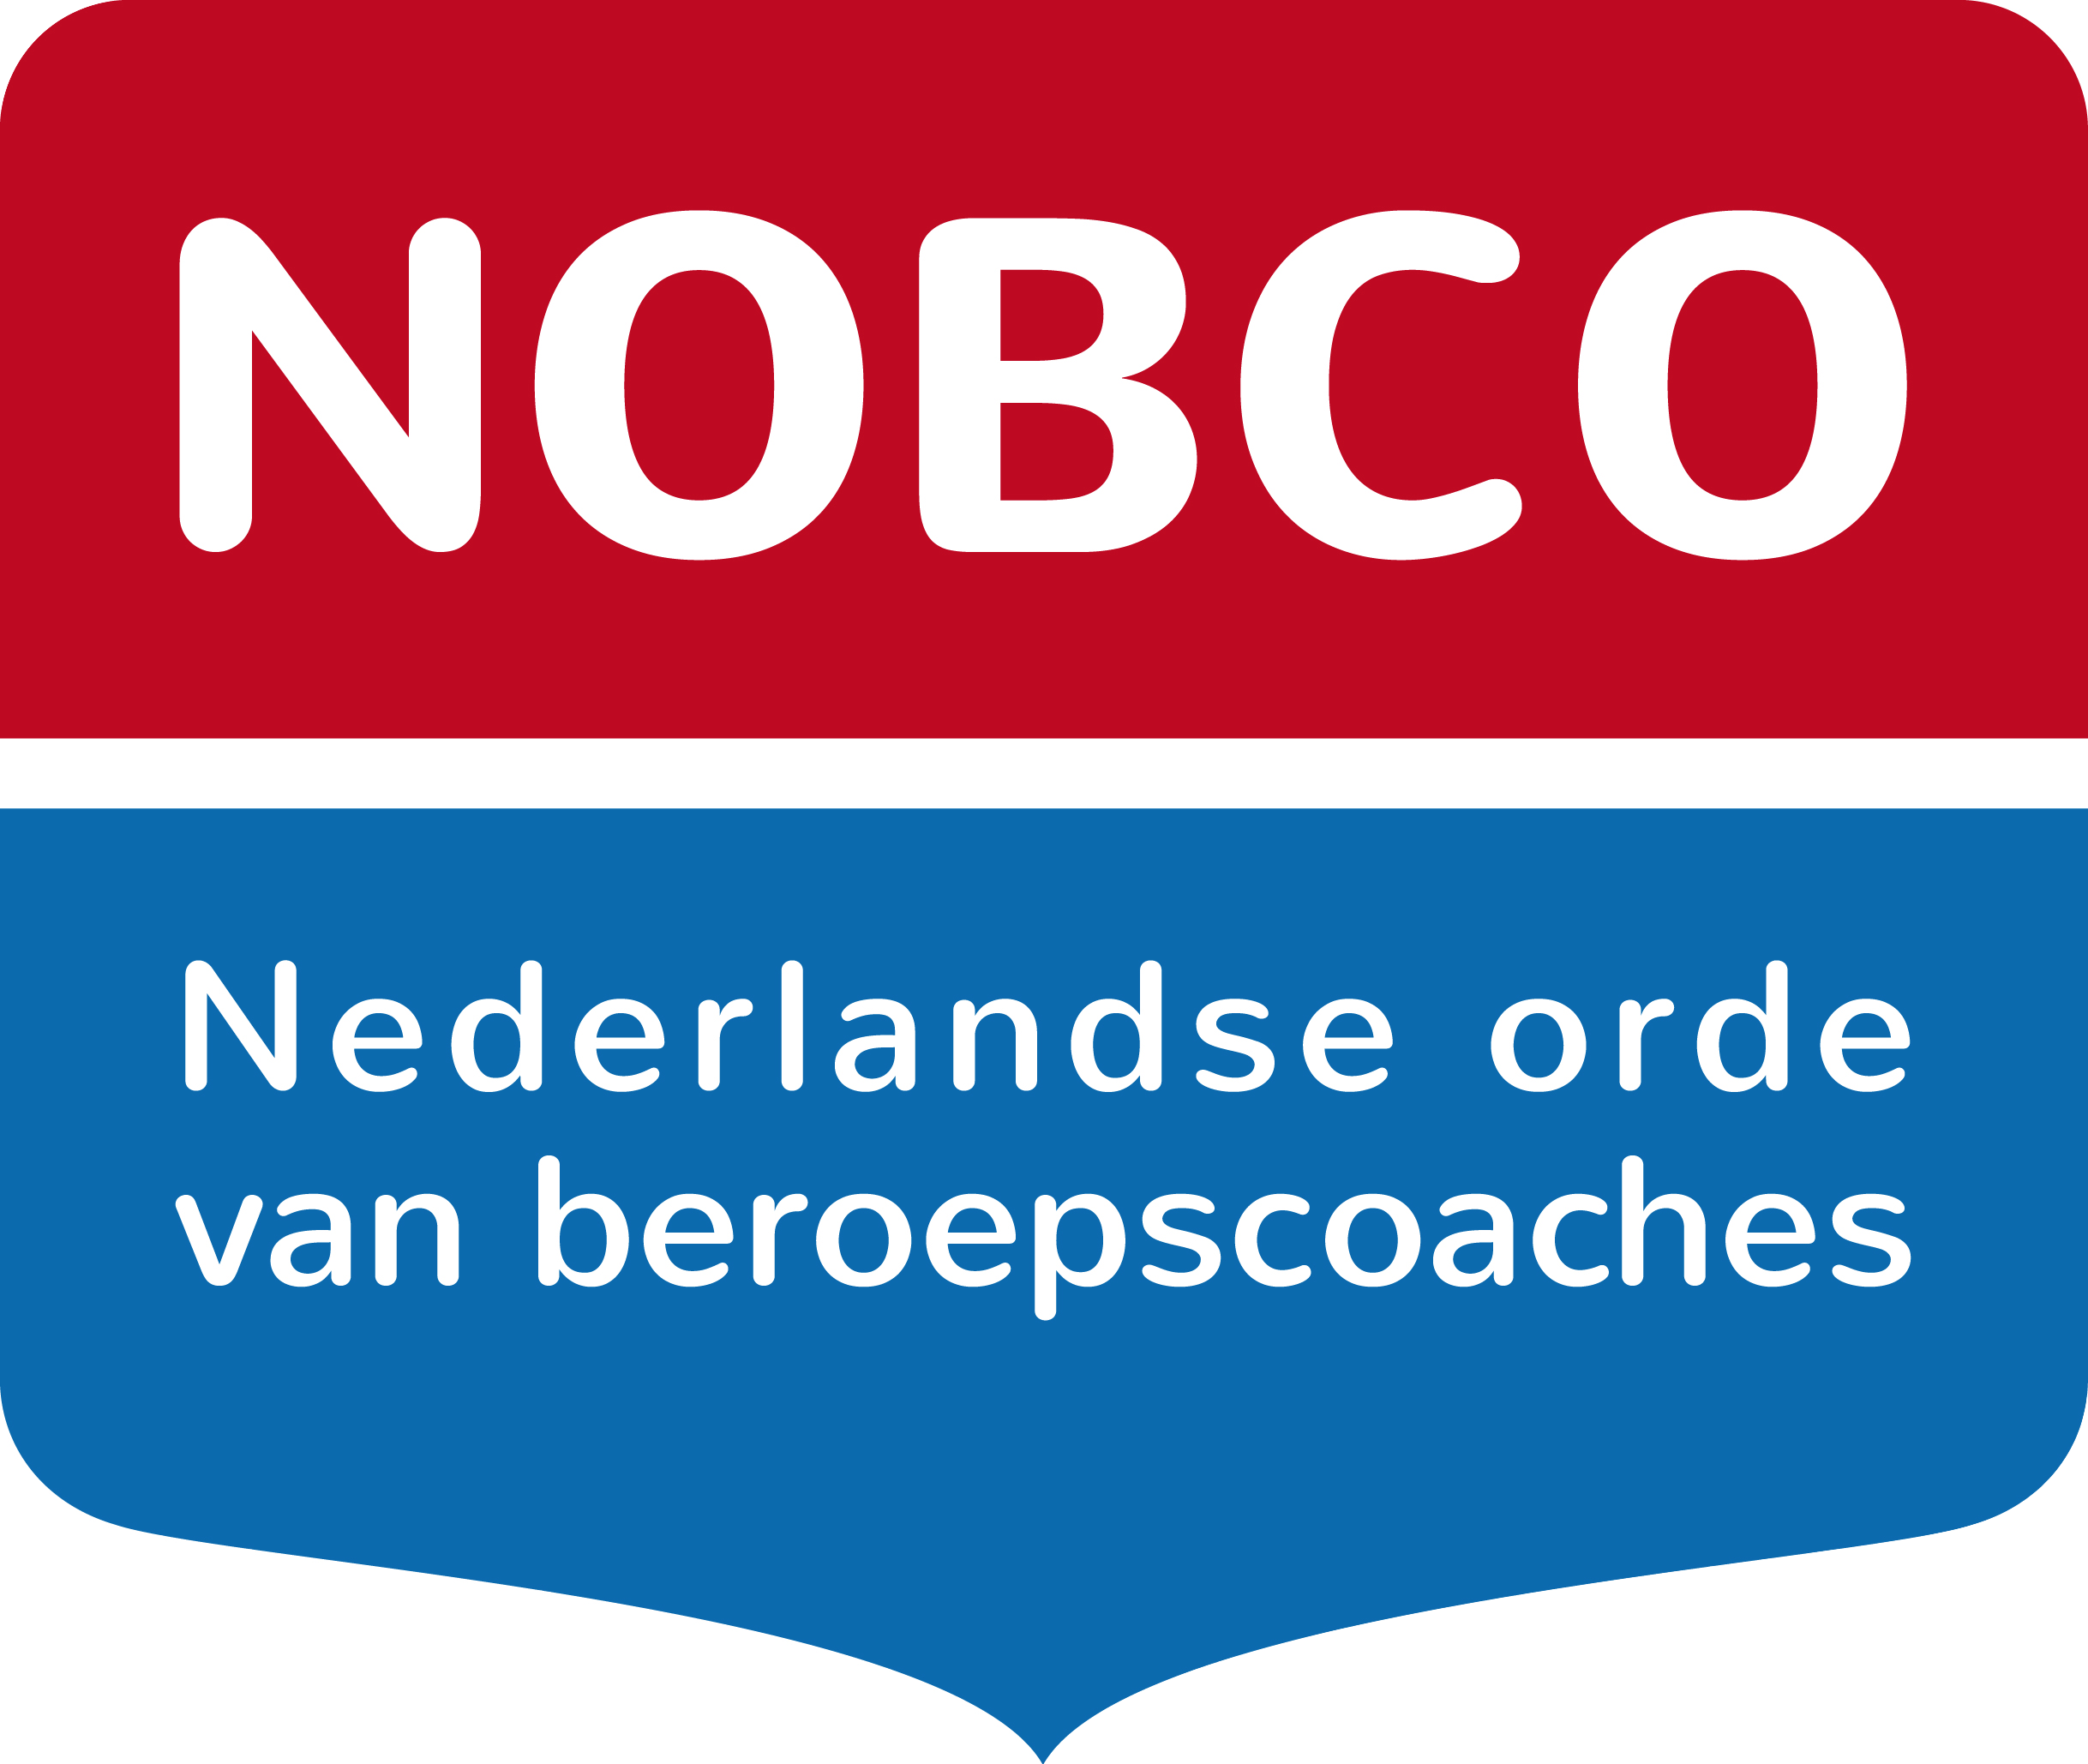 nobco-eqa BCoach